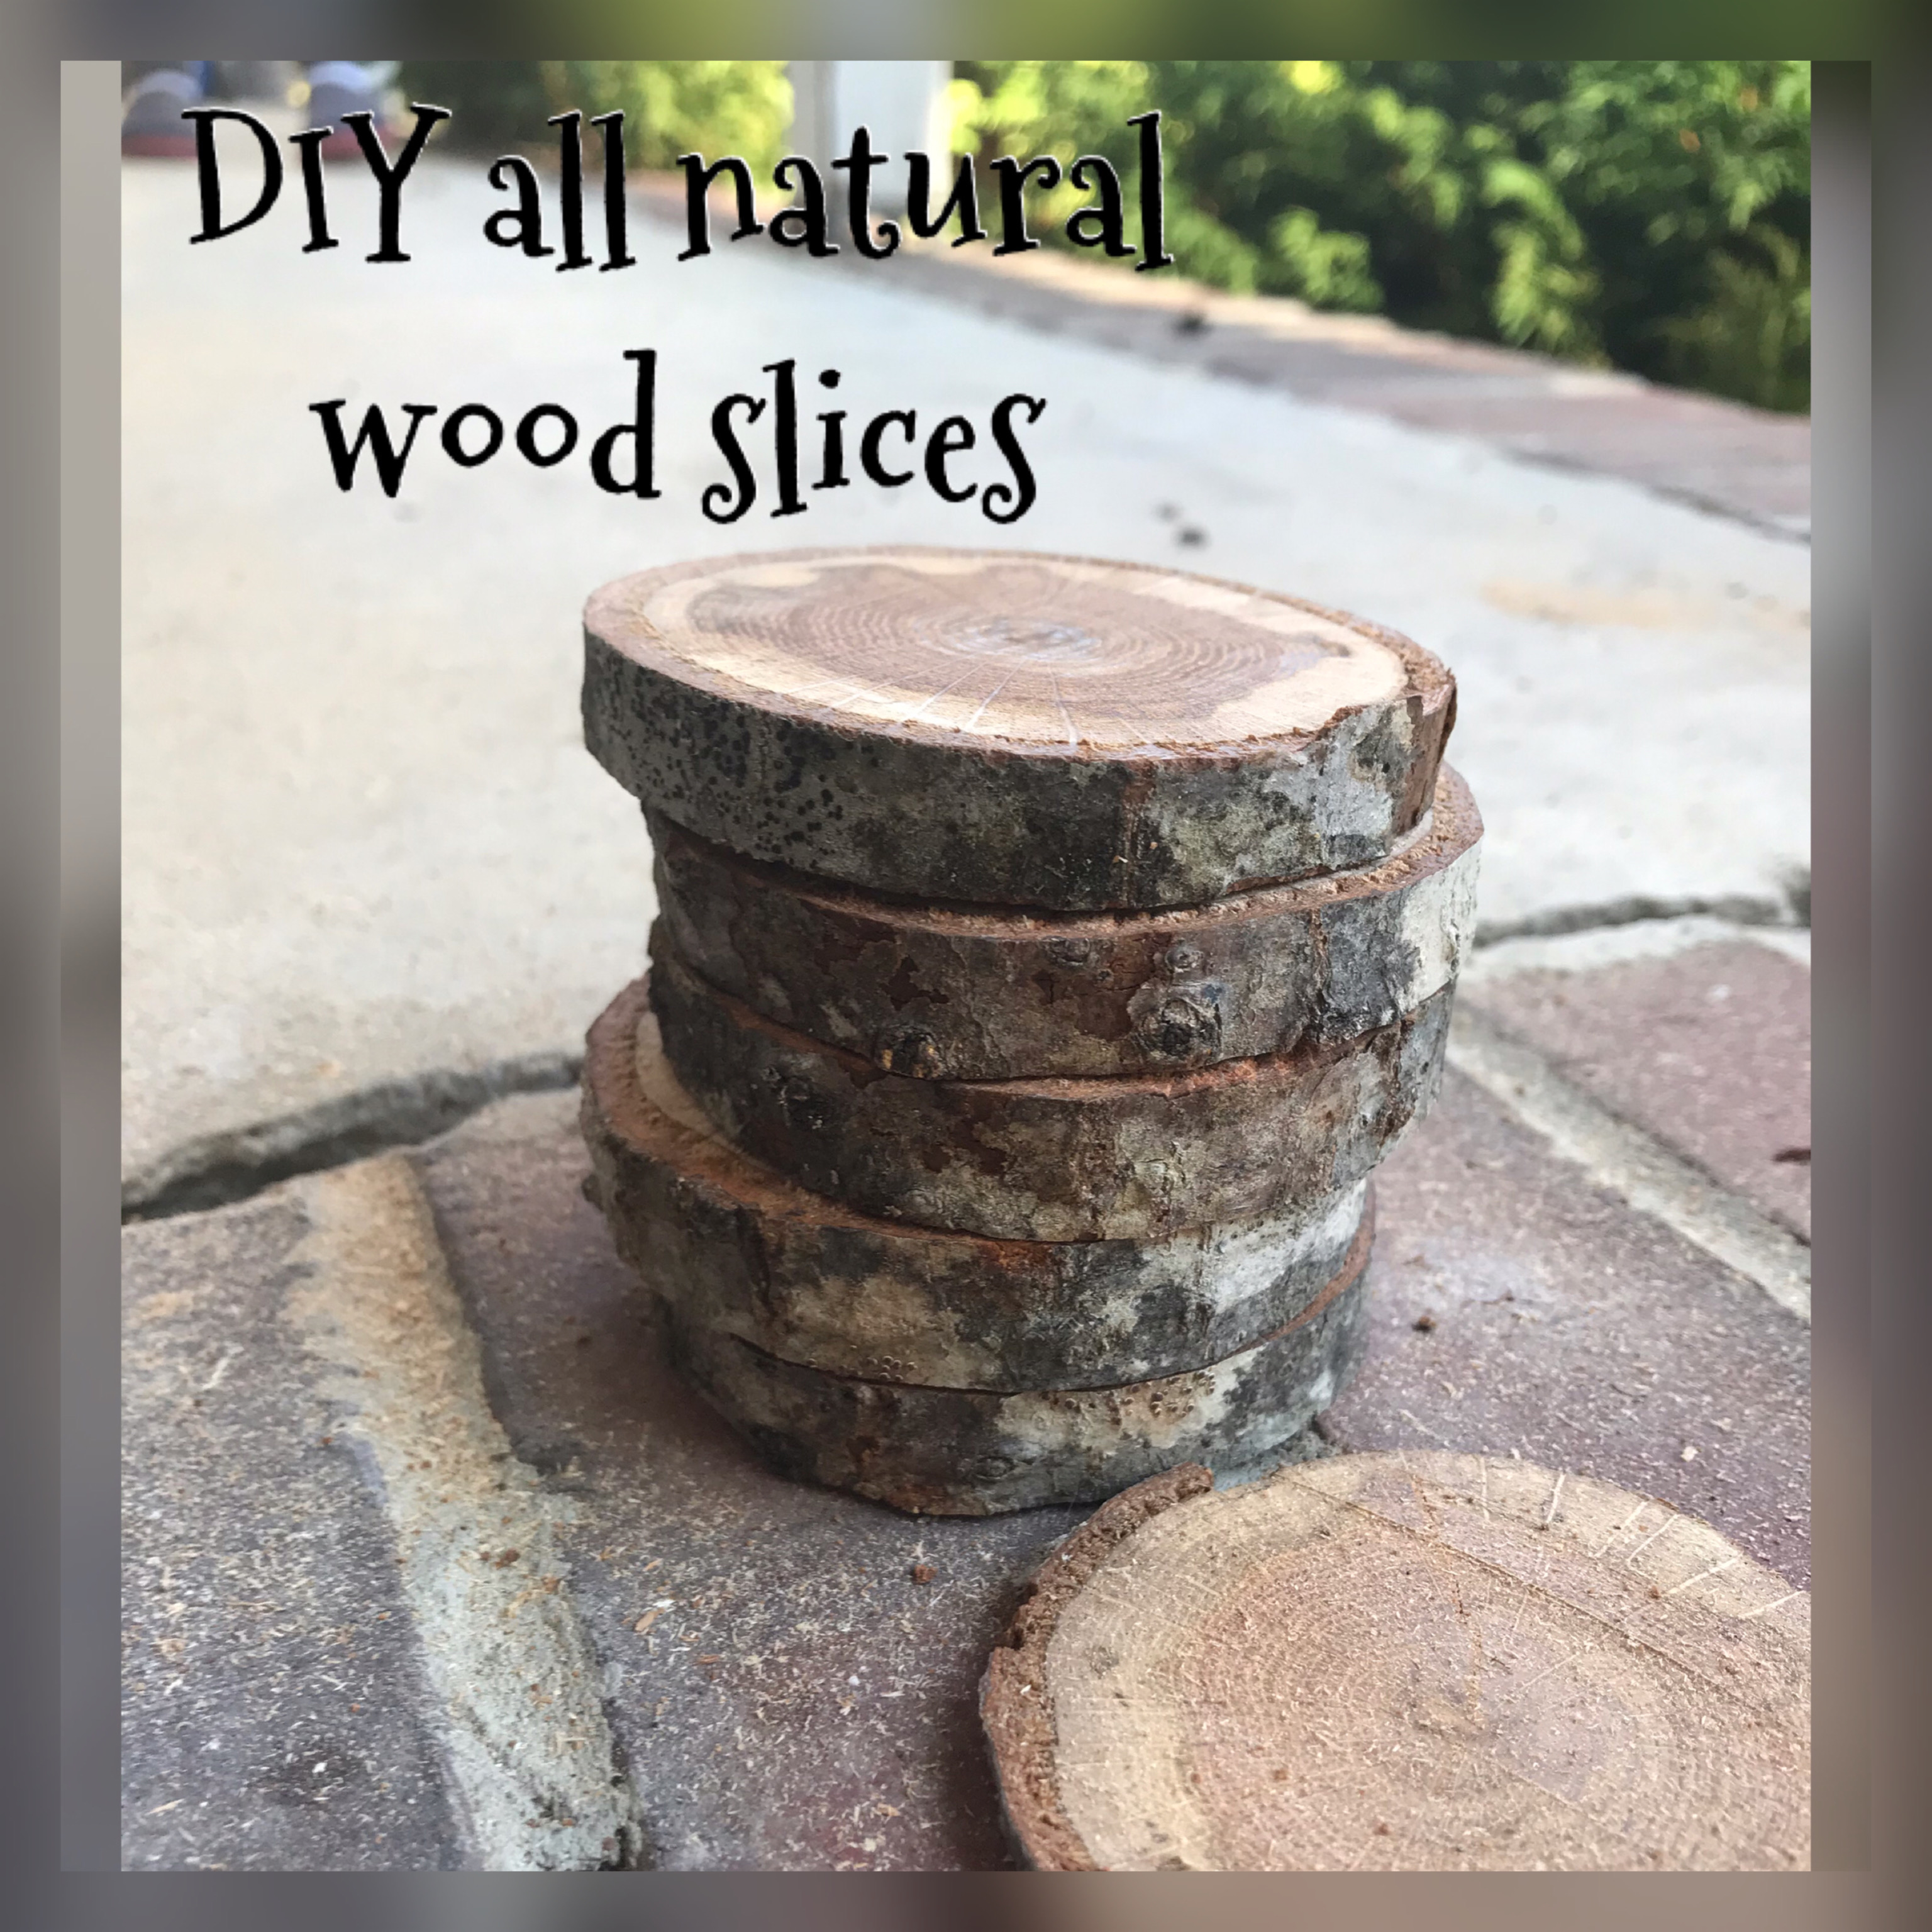 DIY All Natural Wood Slices